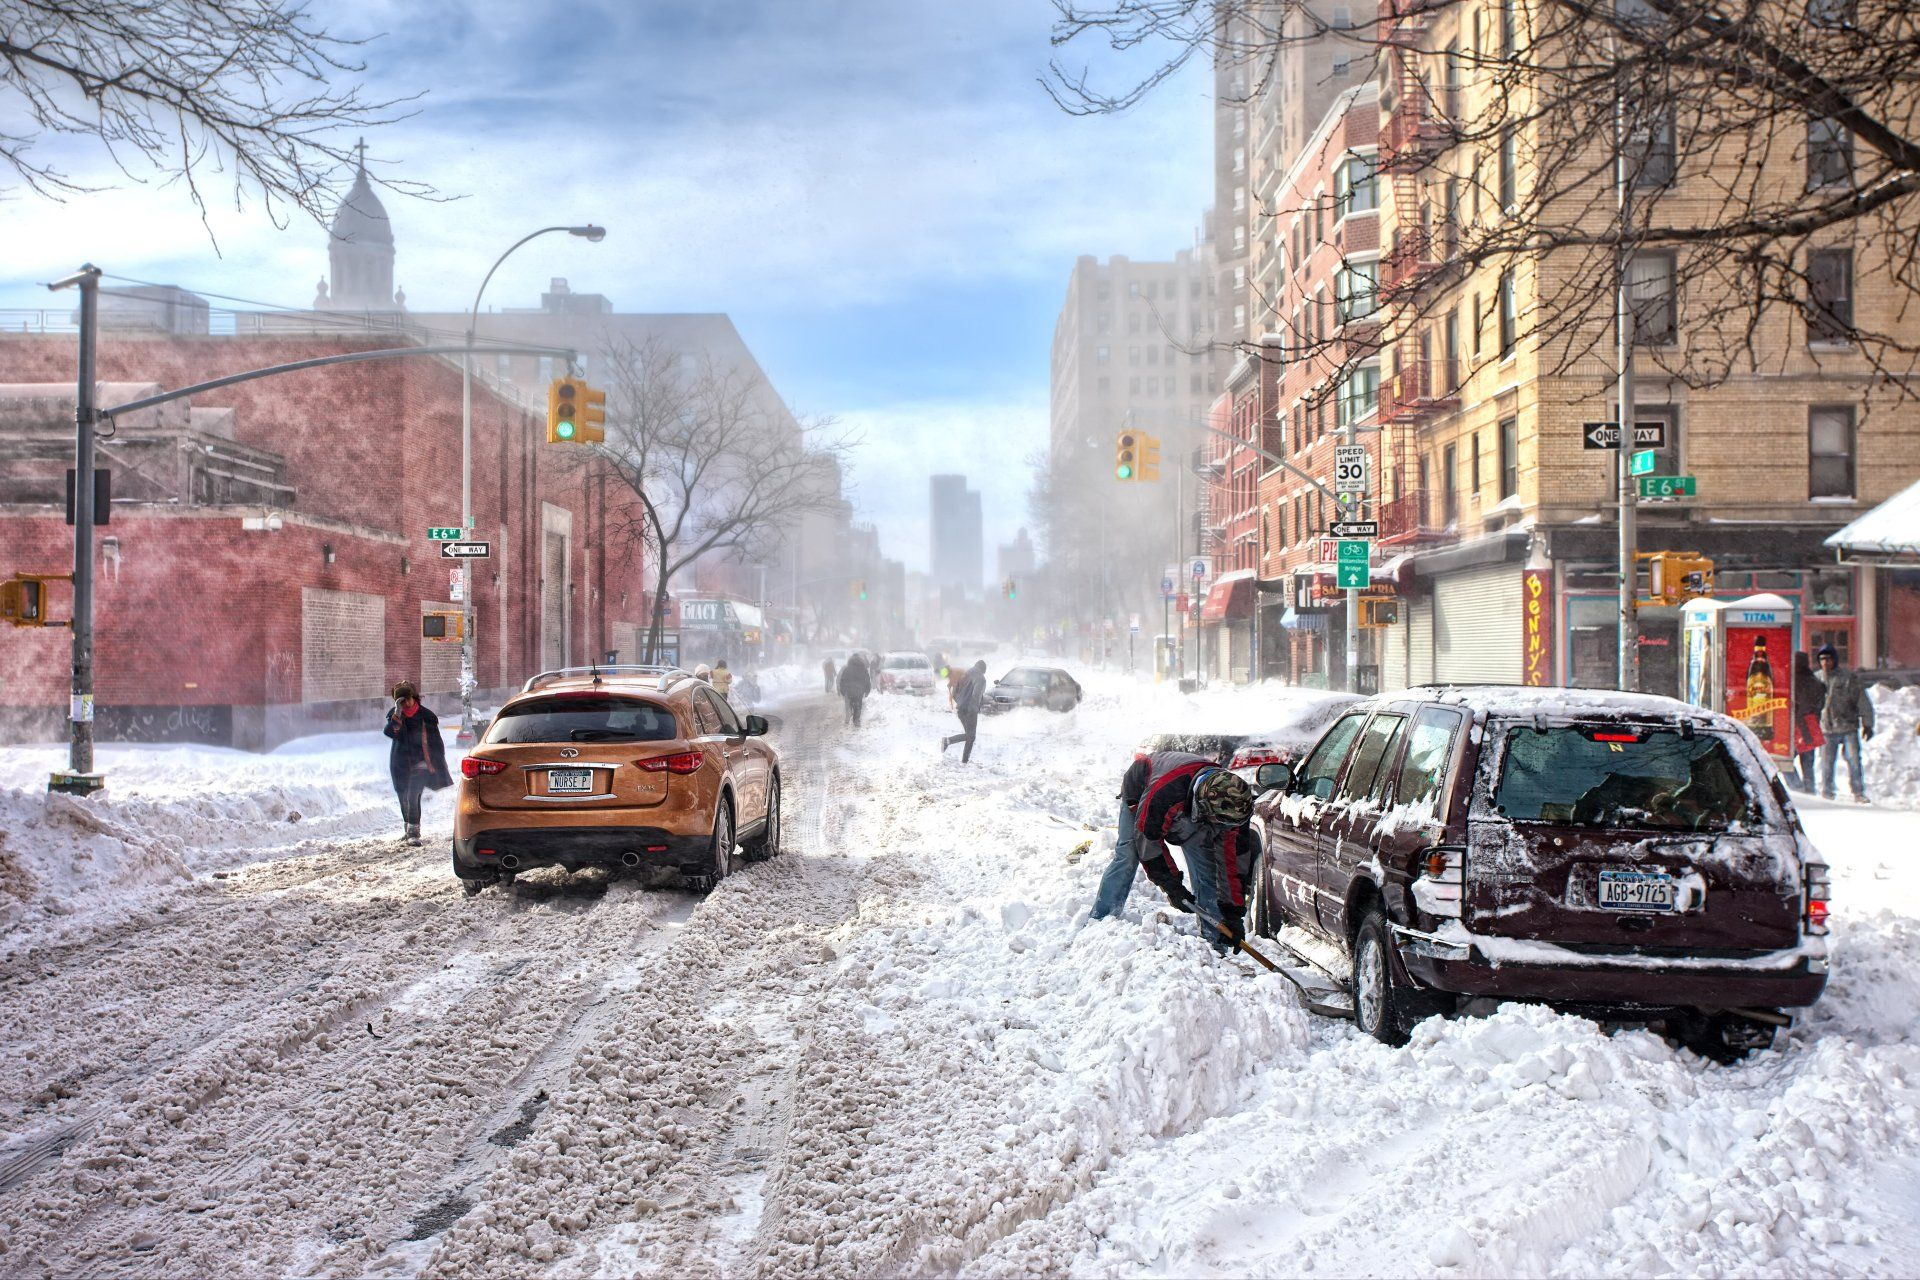 Photography Winter Photography Snow Snowfall City Building Car People Wallpaper Winter City Winter Landscape City Wallpaper